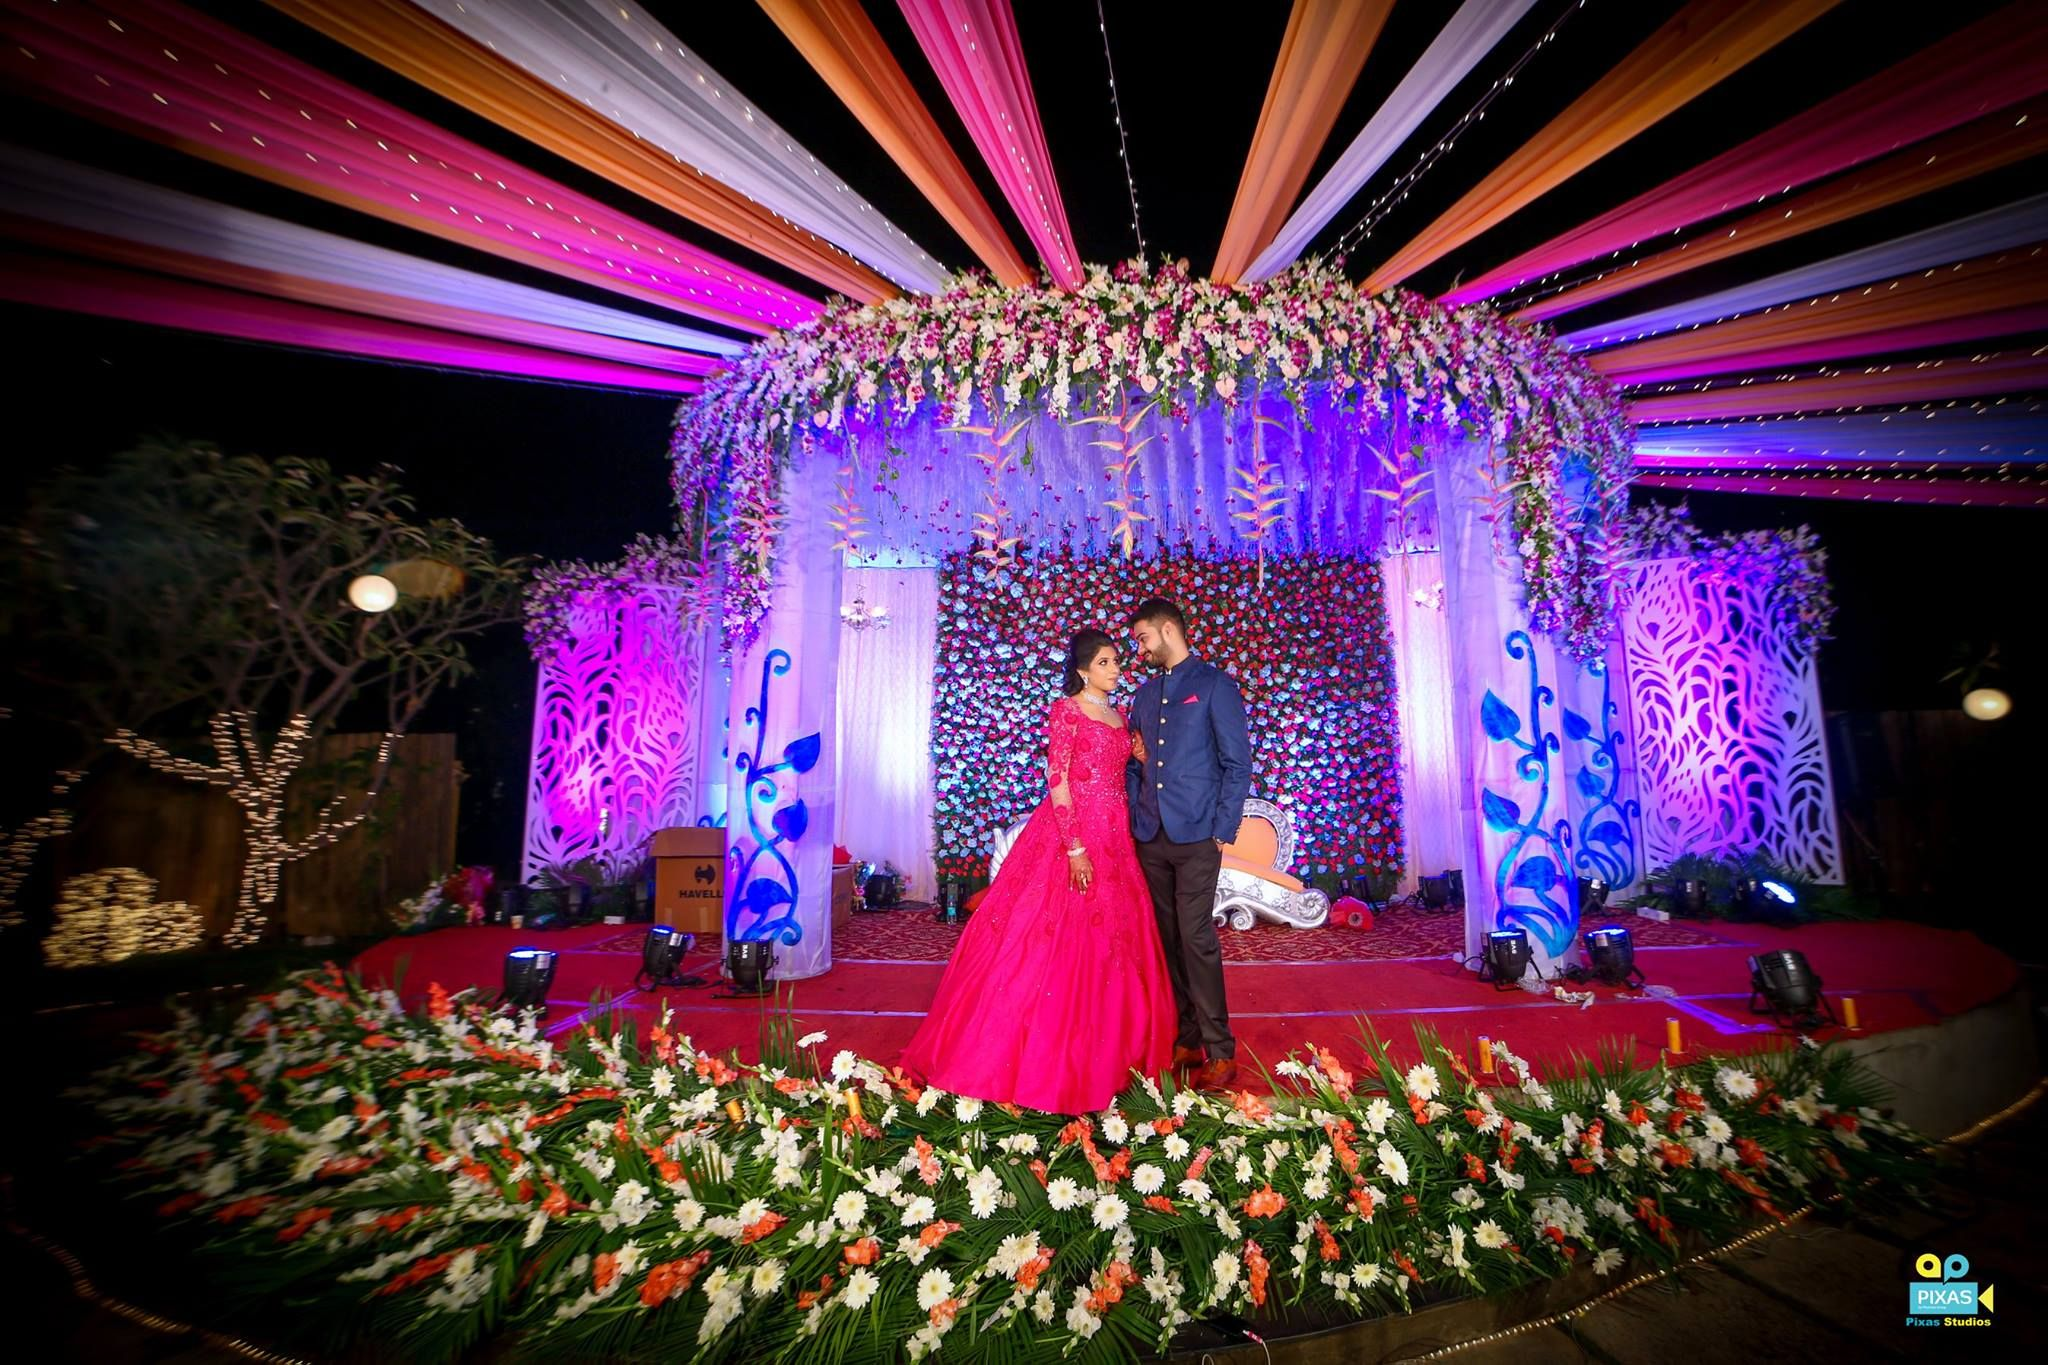 Get Inspired From Thousands Of Photos Latest Wedding Decor Designs For Your Dream